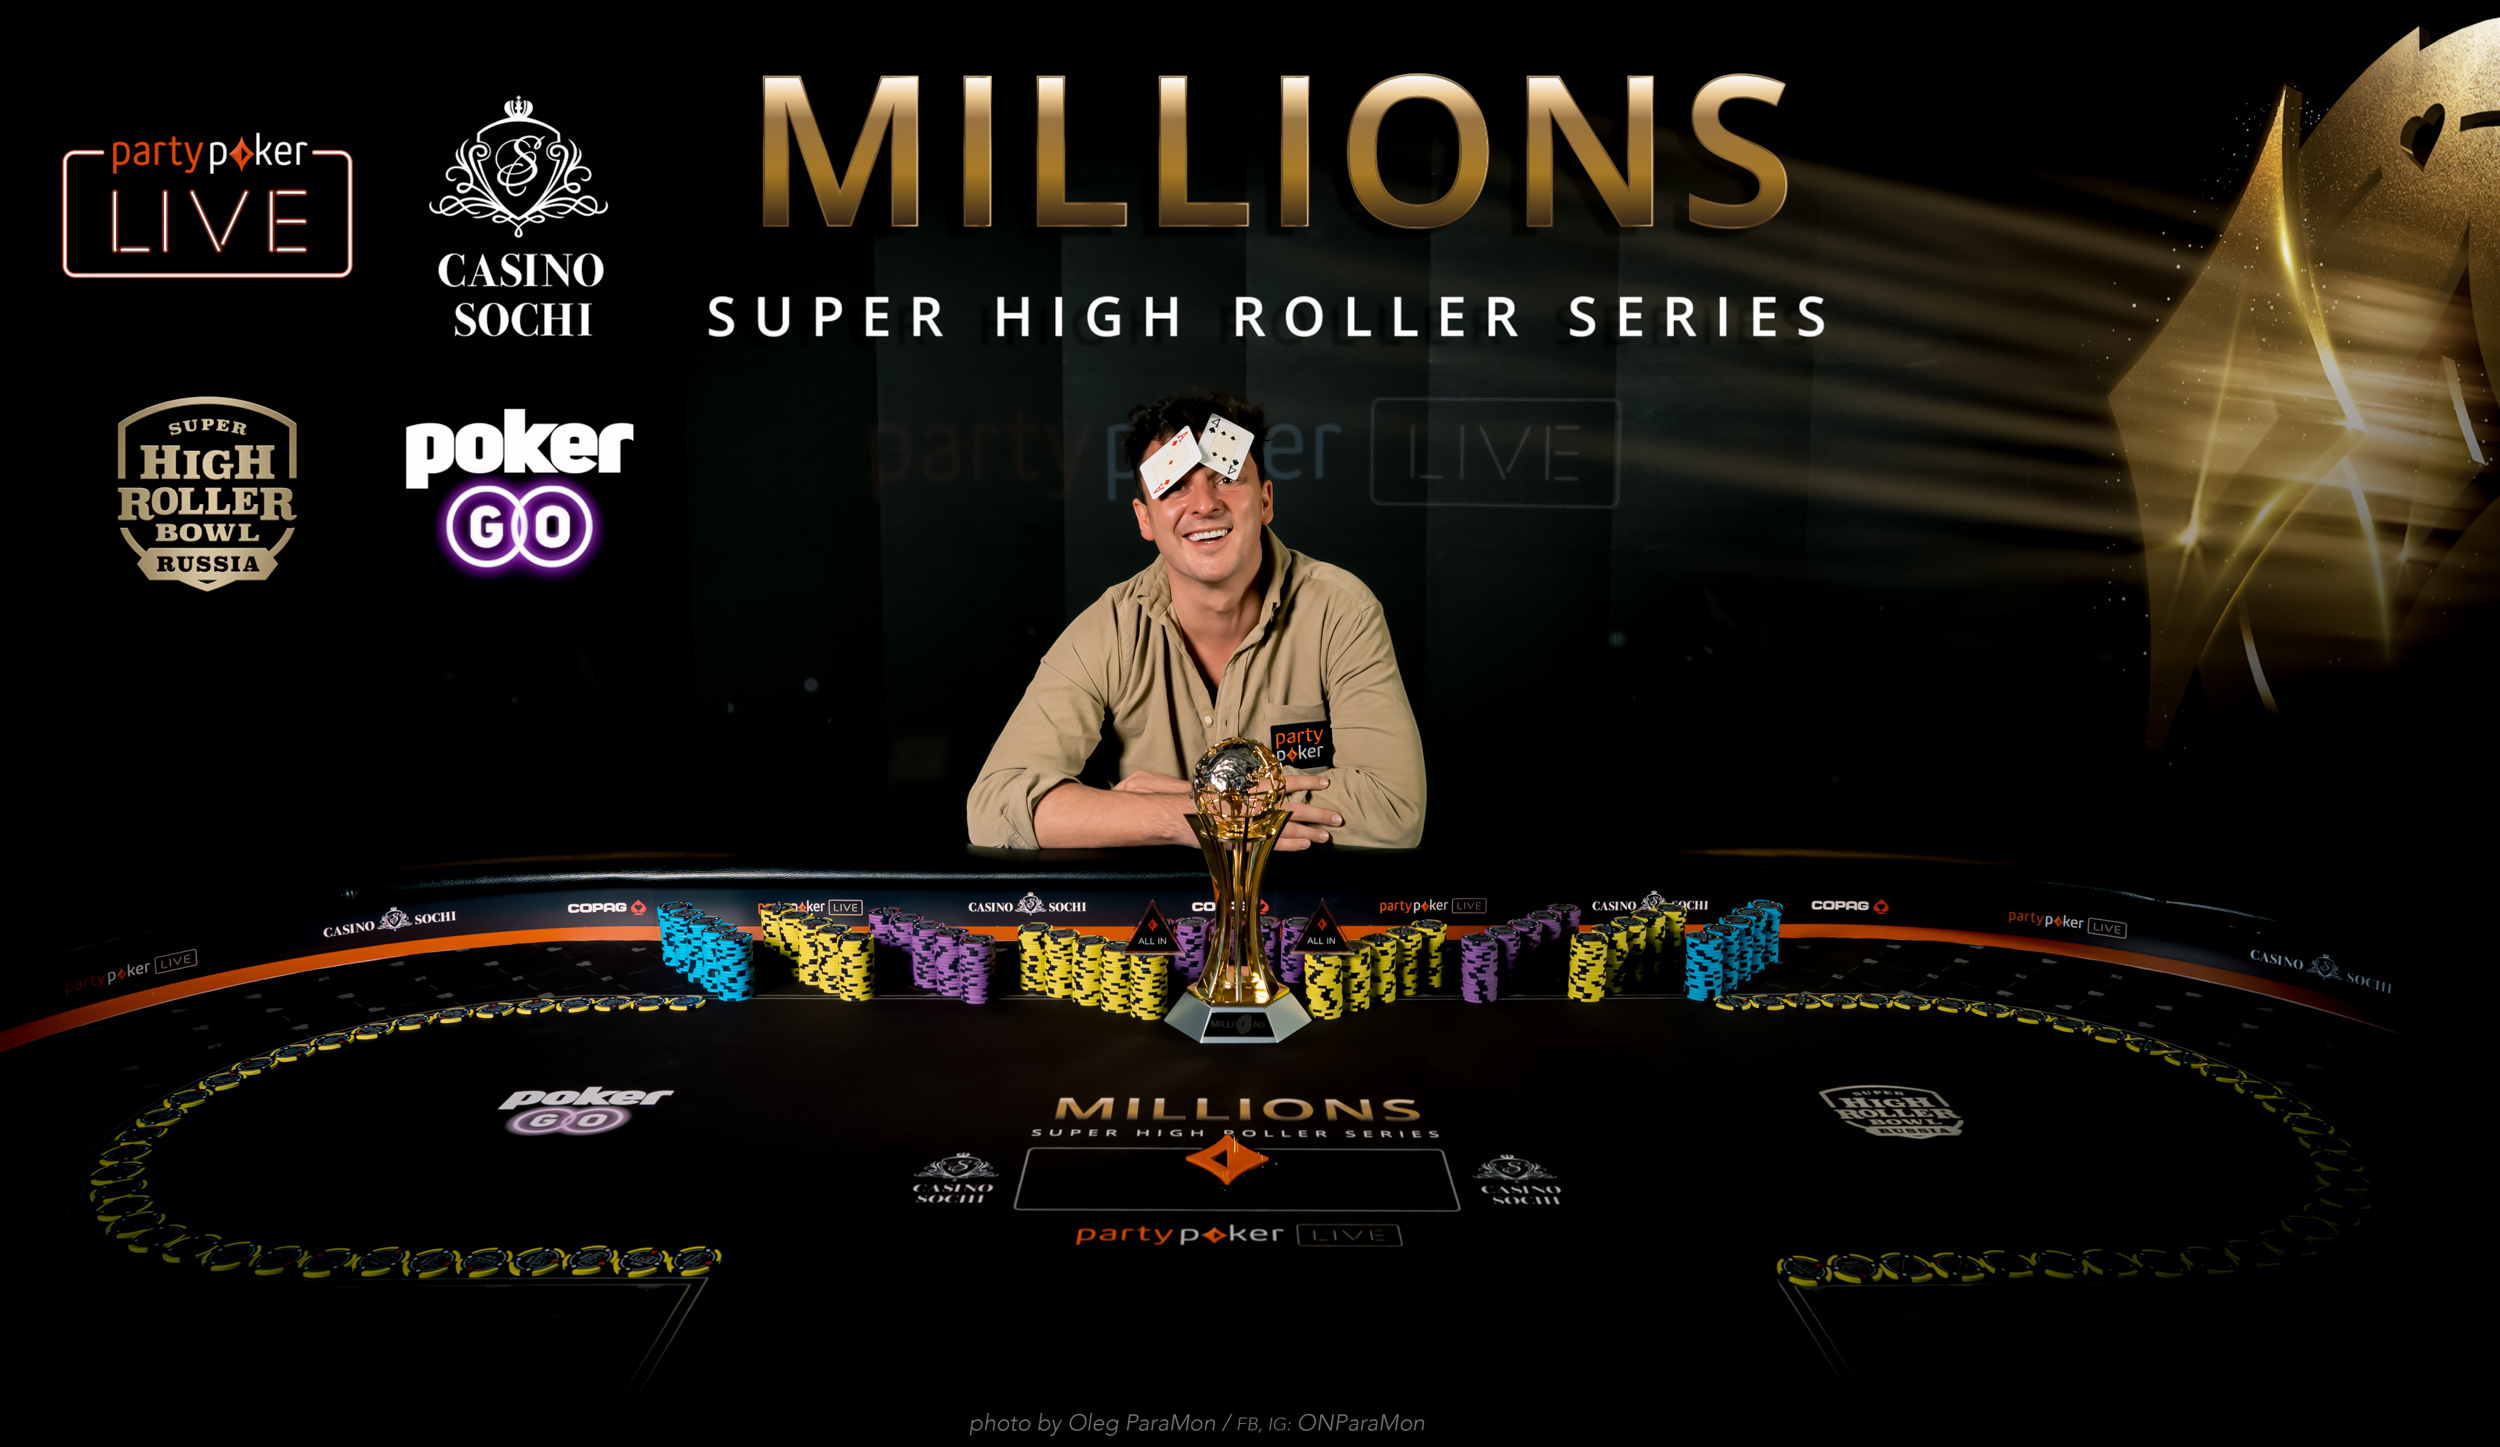 Sam Trickett wins Event #2 of partypoker MILLIONS Super High Roller Series Sochi for $435,000